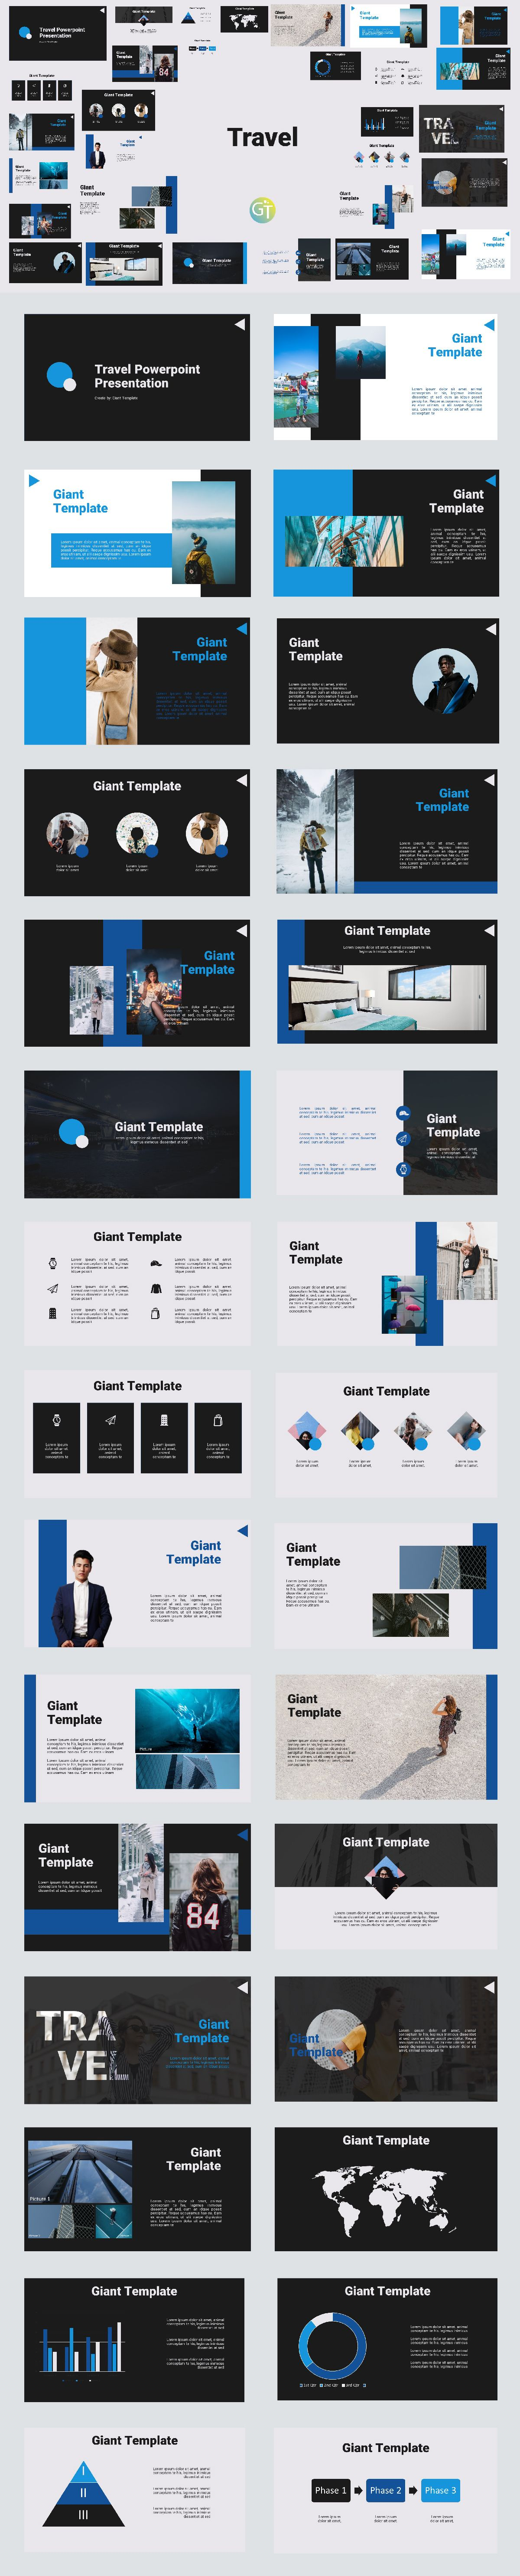 Travel Free Powerpoint Template In 2020 Free Powerpoint Templates Download Powerpoint Templates Powerpoint Template Free